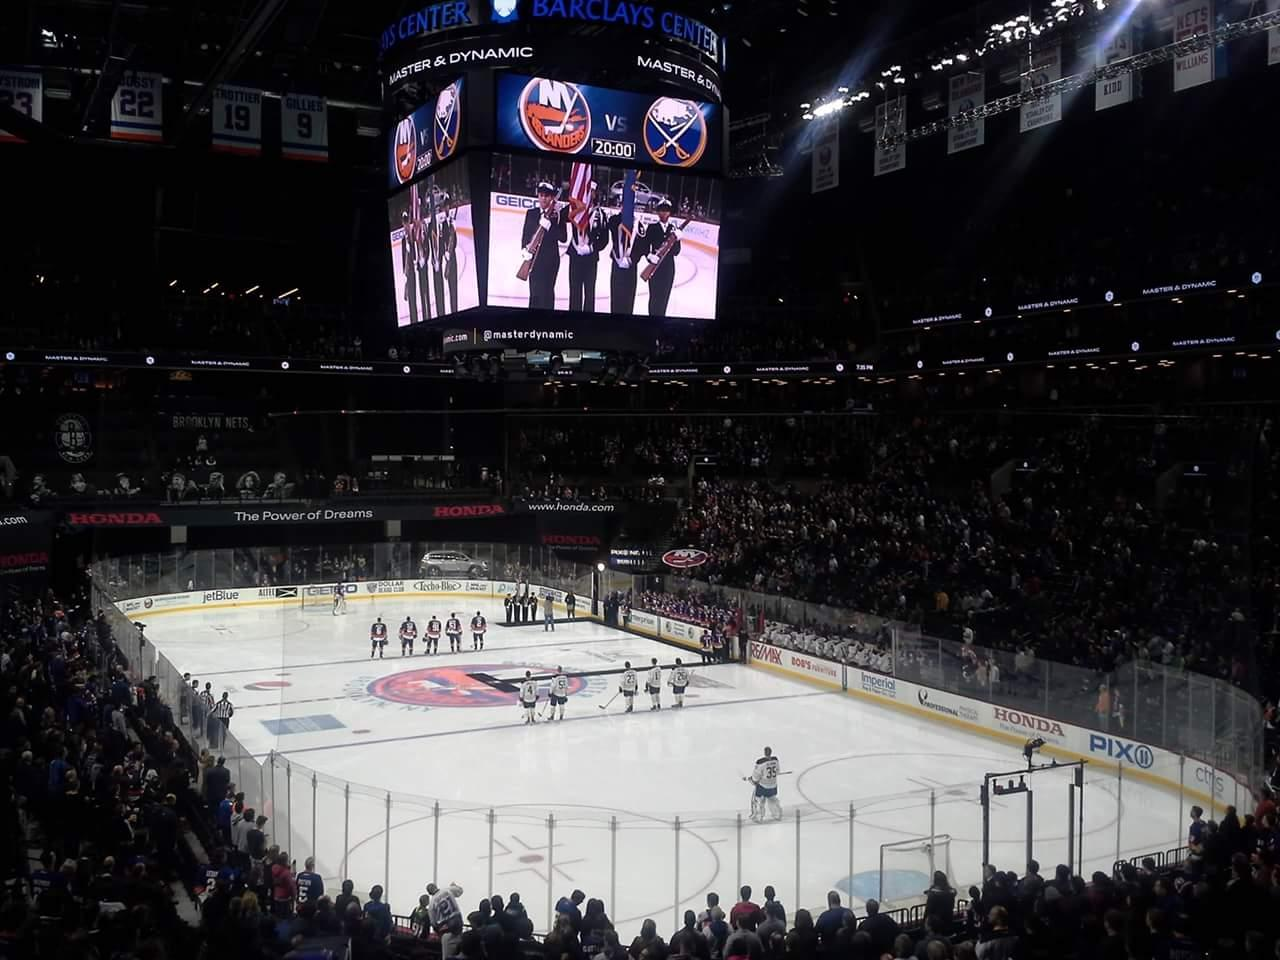 Barclays Center Section 118 Row 5 Seat 1